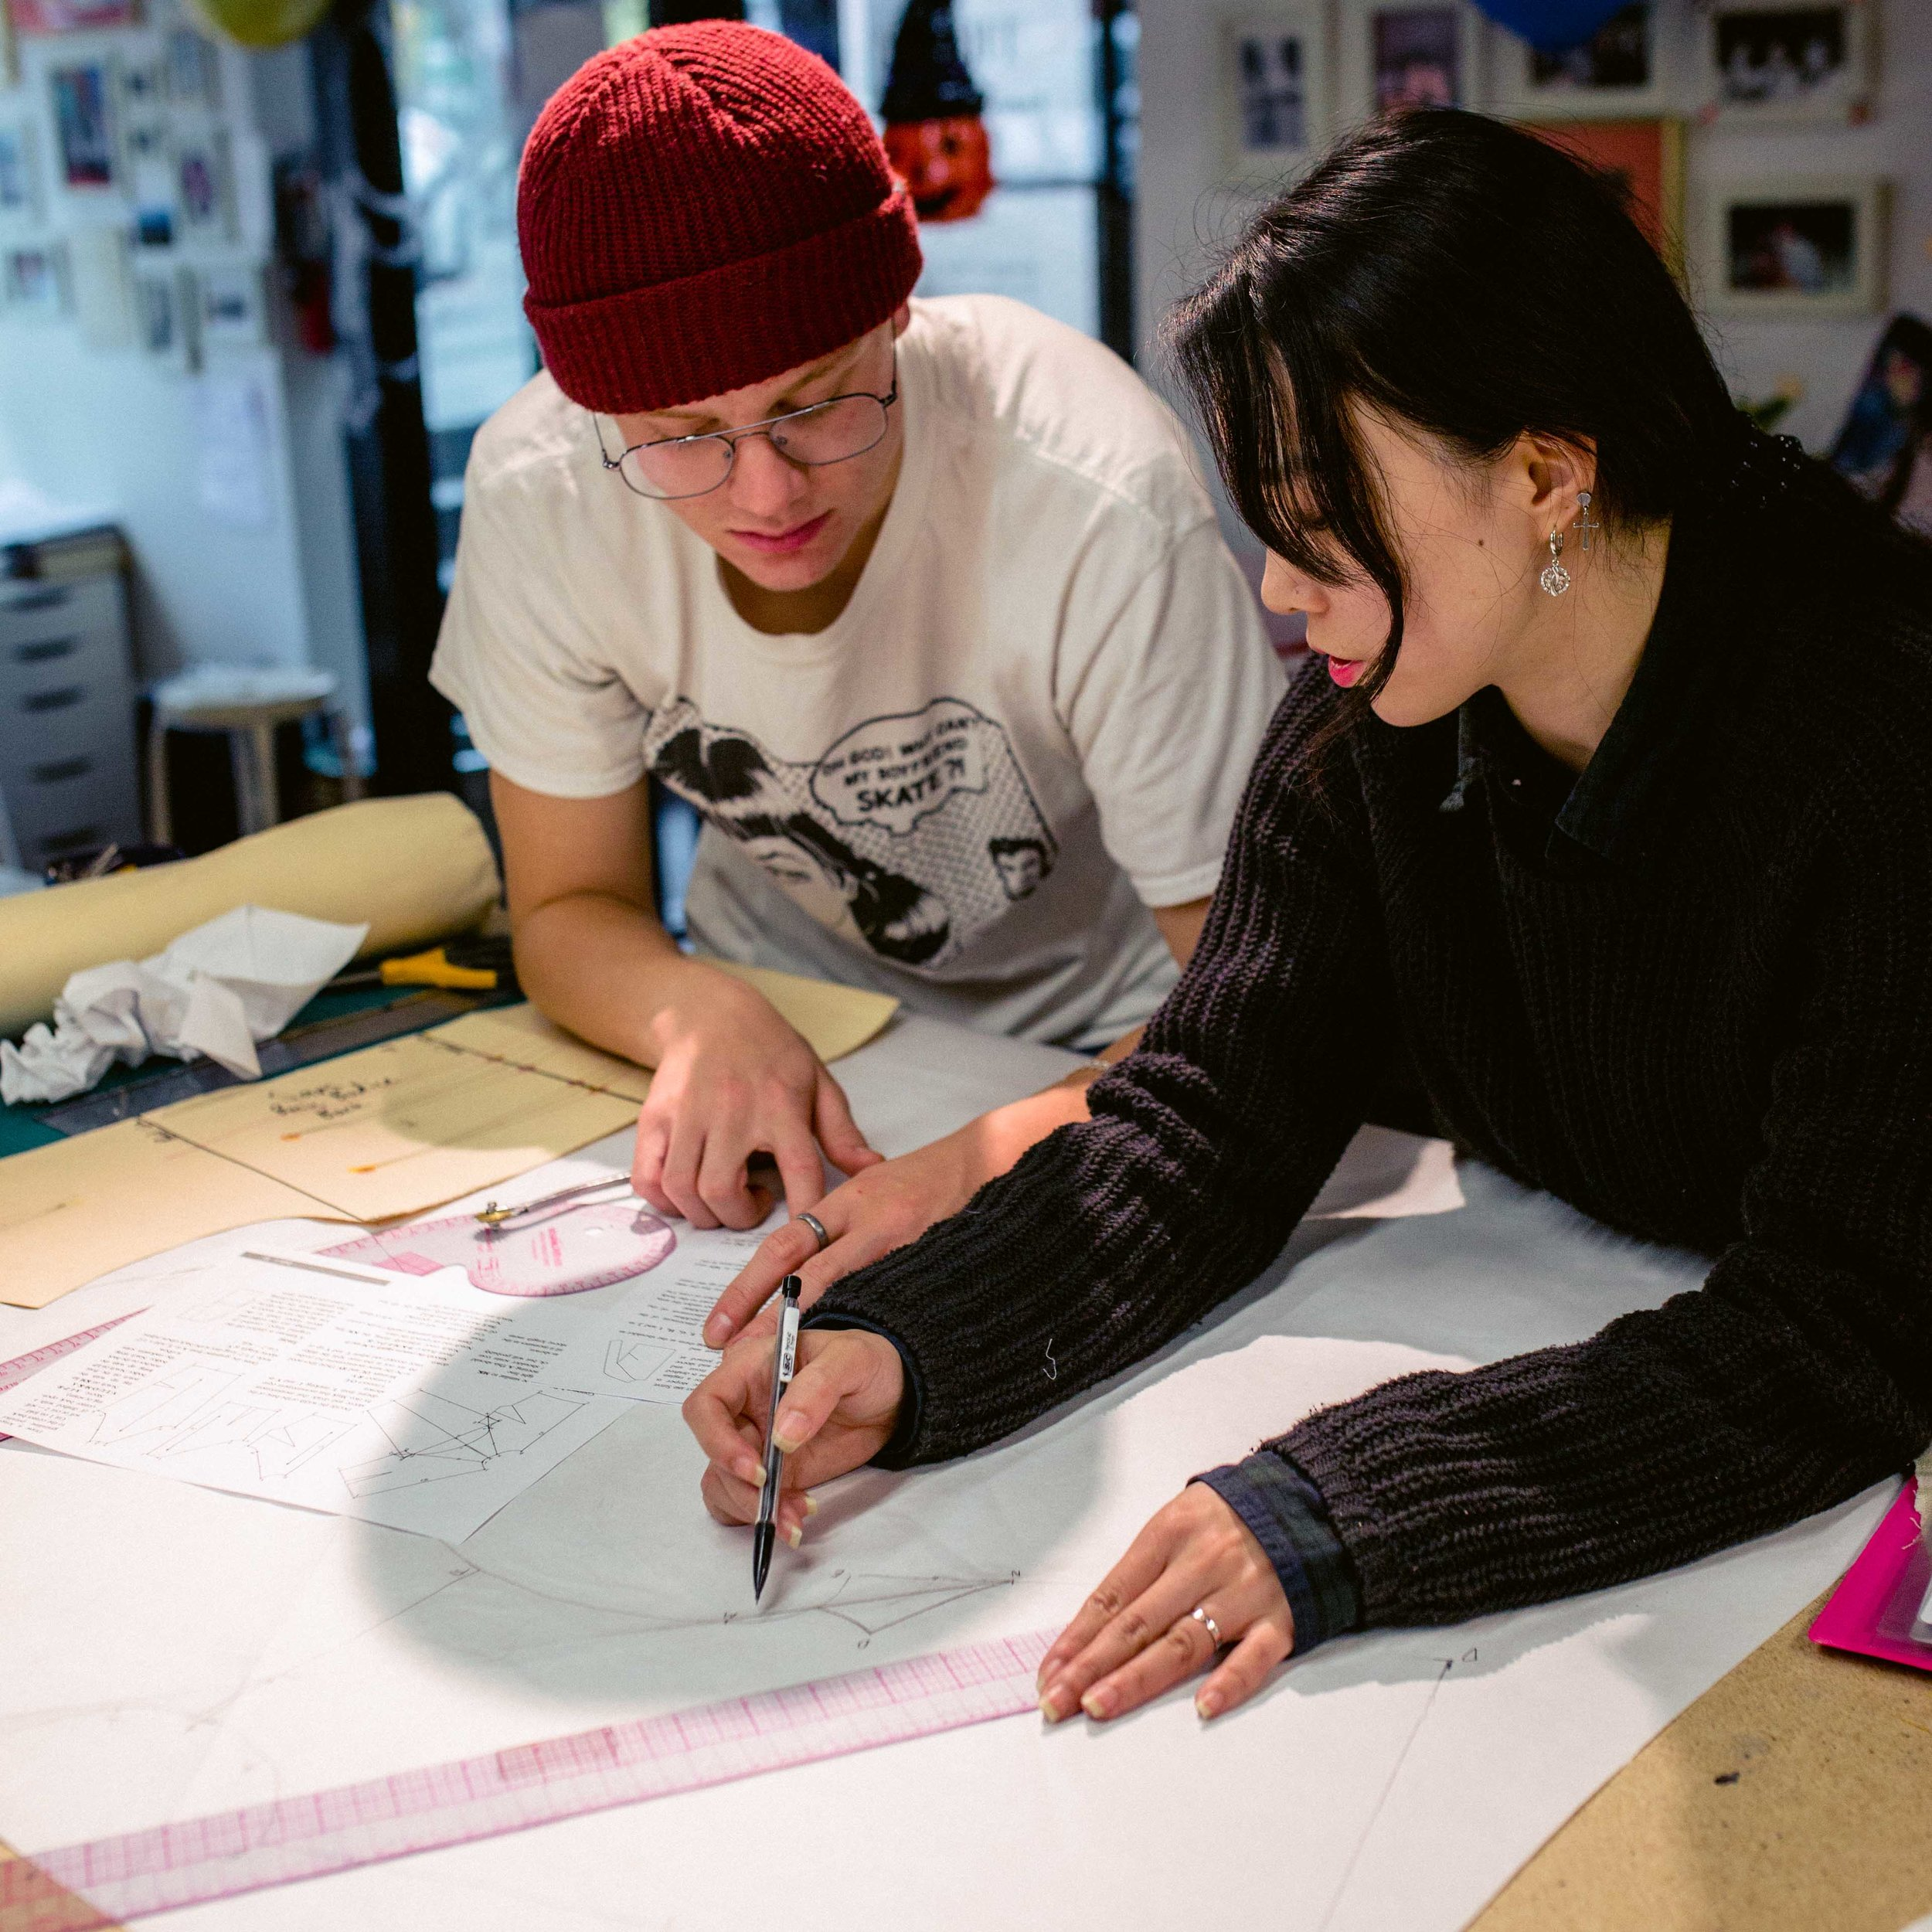 beginner-pattern-making-level2-classes-vancouver-canada-thecutfashionacademy